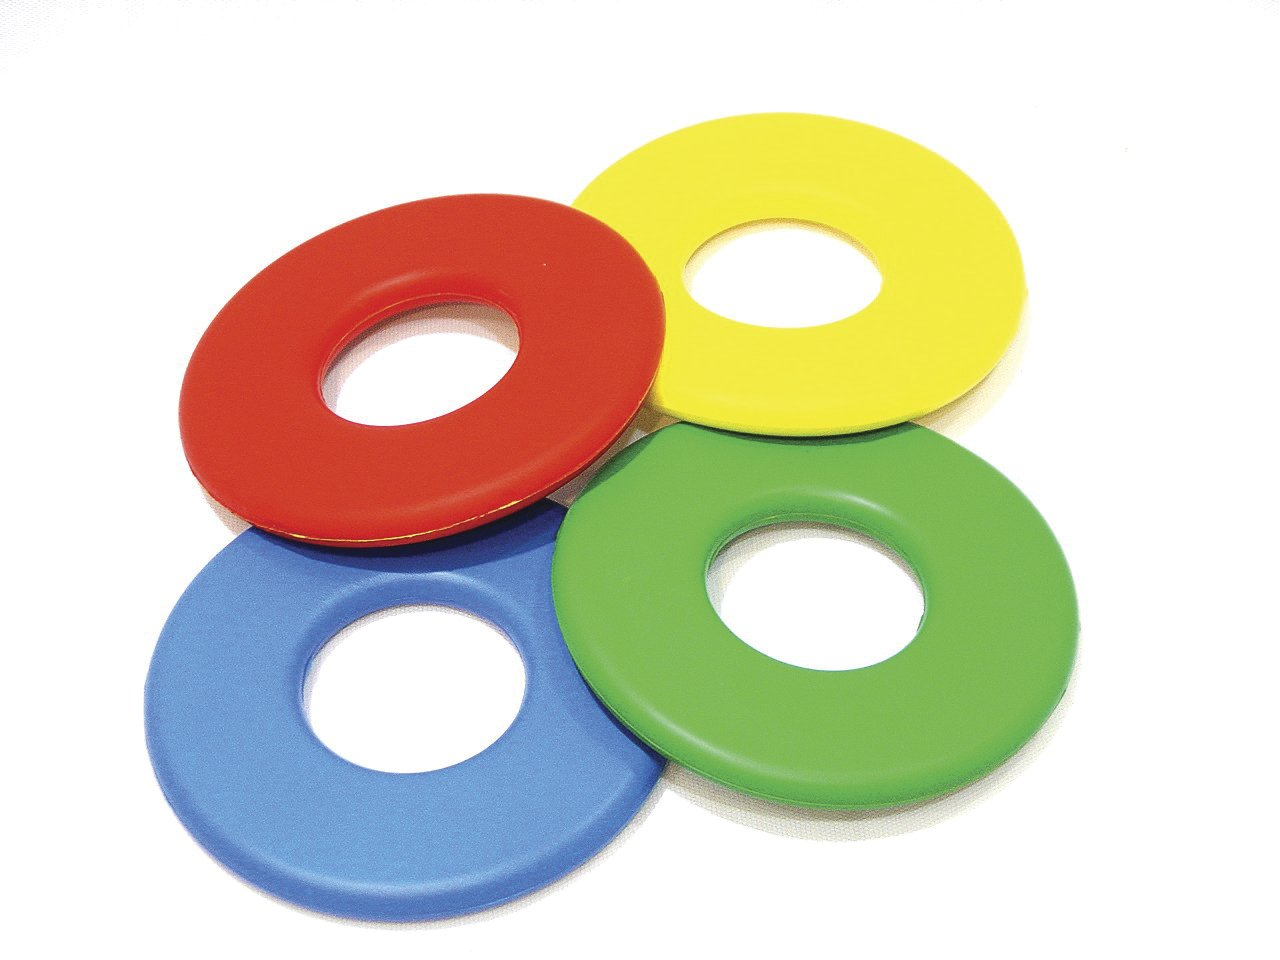 American Educational Products Hollow Foam Discus, Set of 6